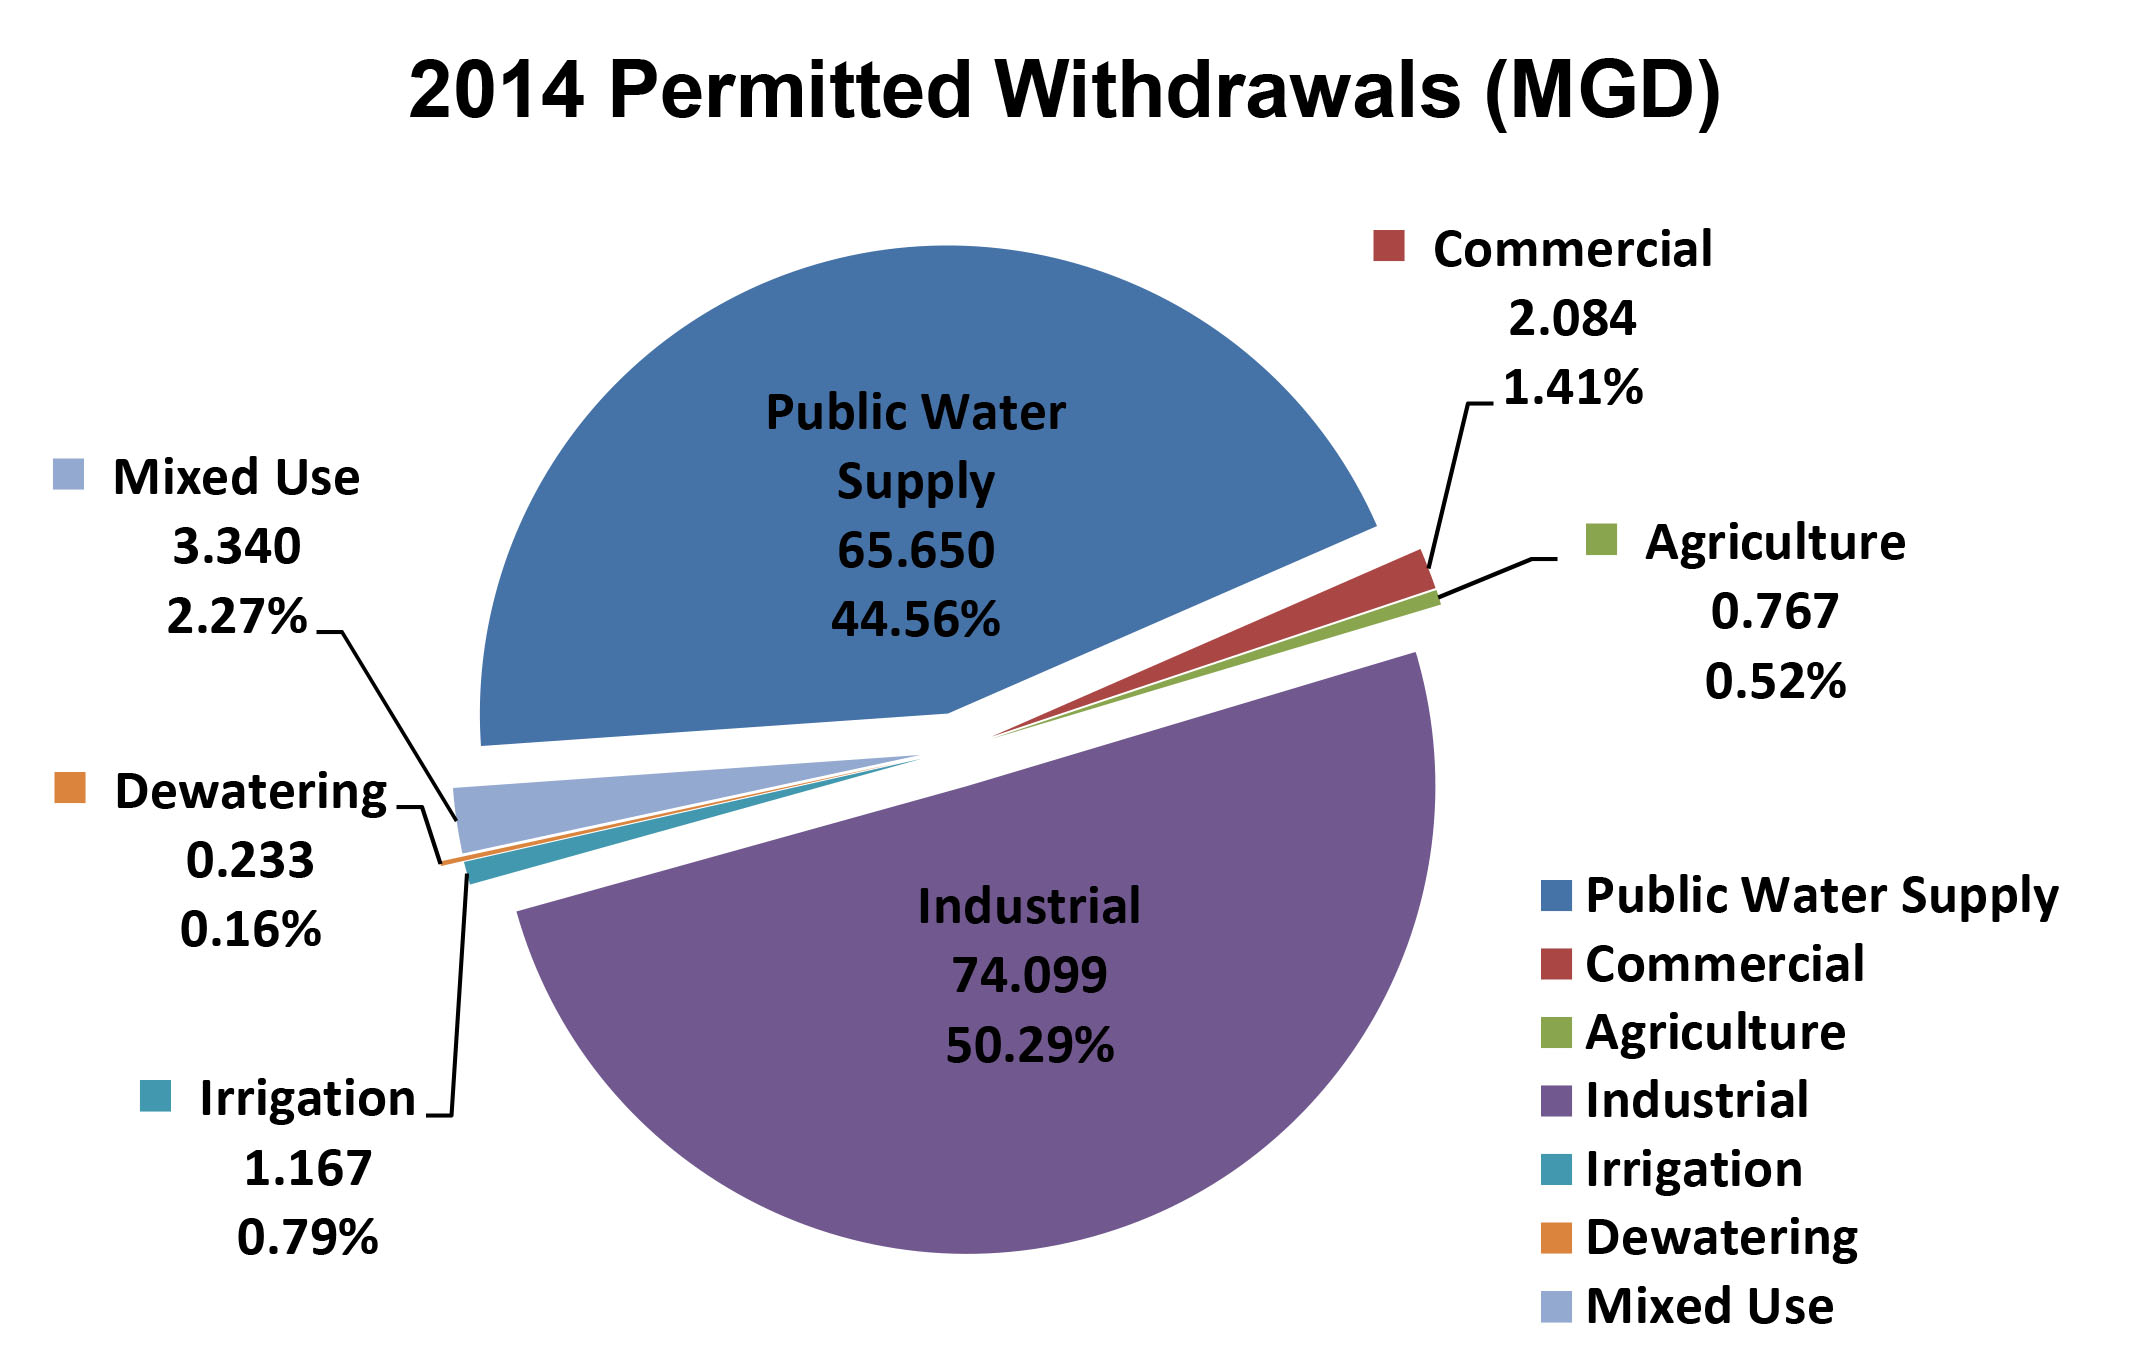 2014 Permitted Withdrawls Pie Chart